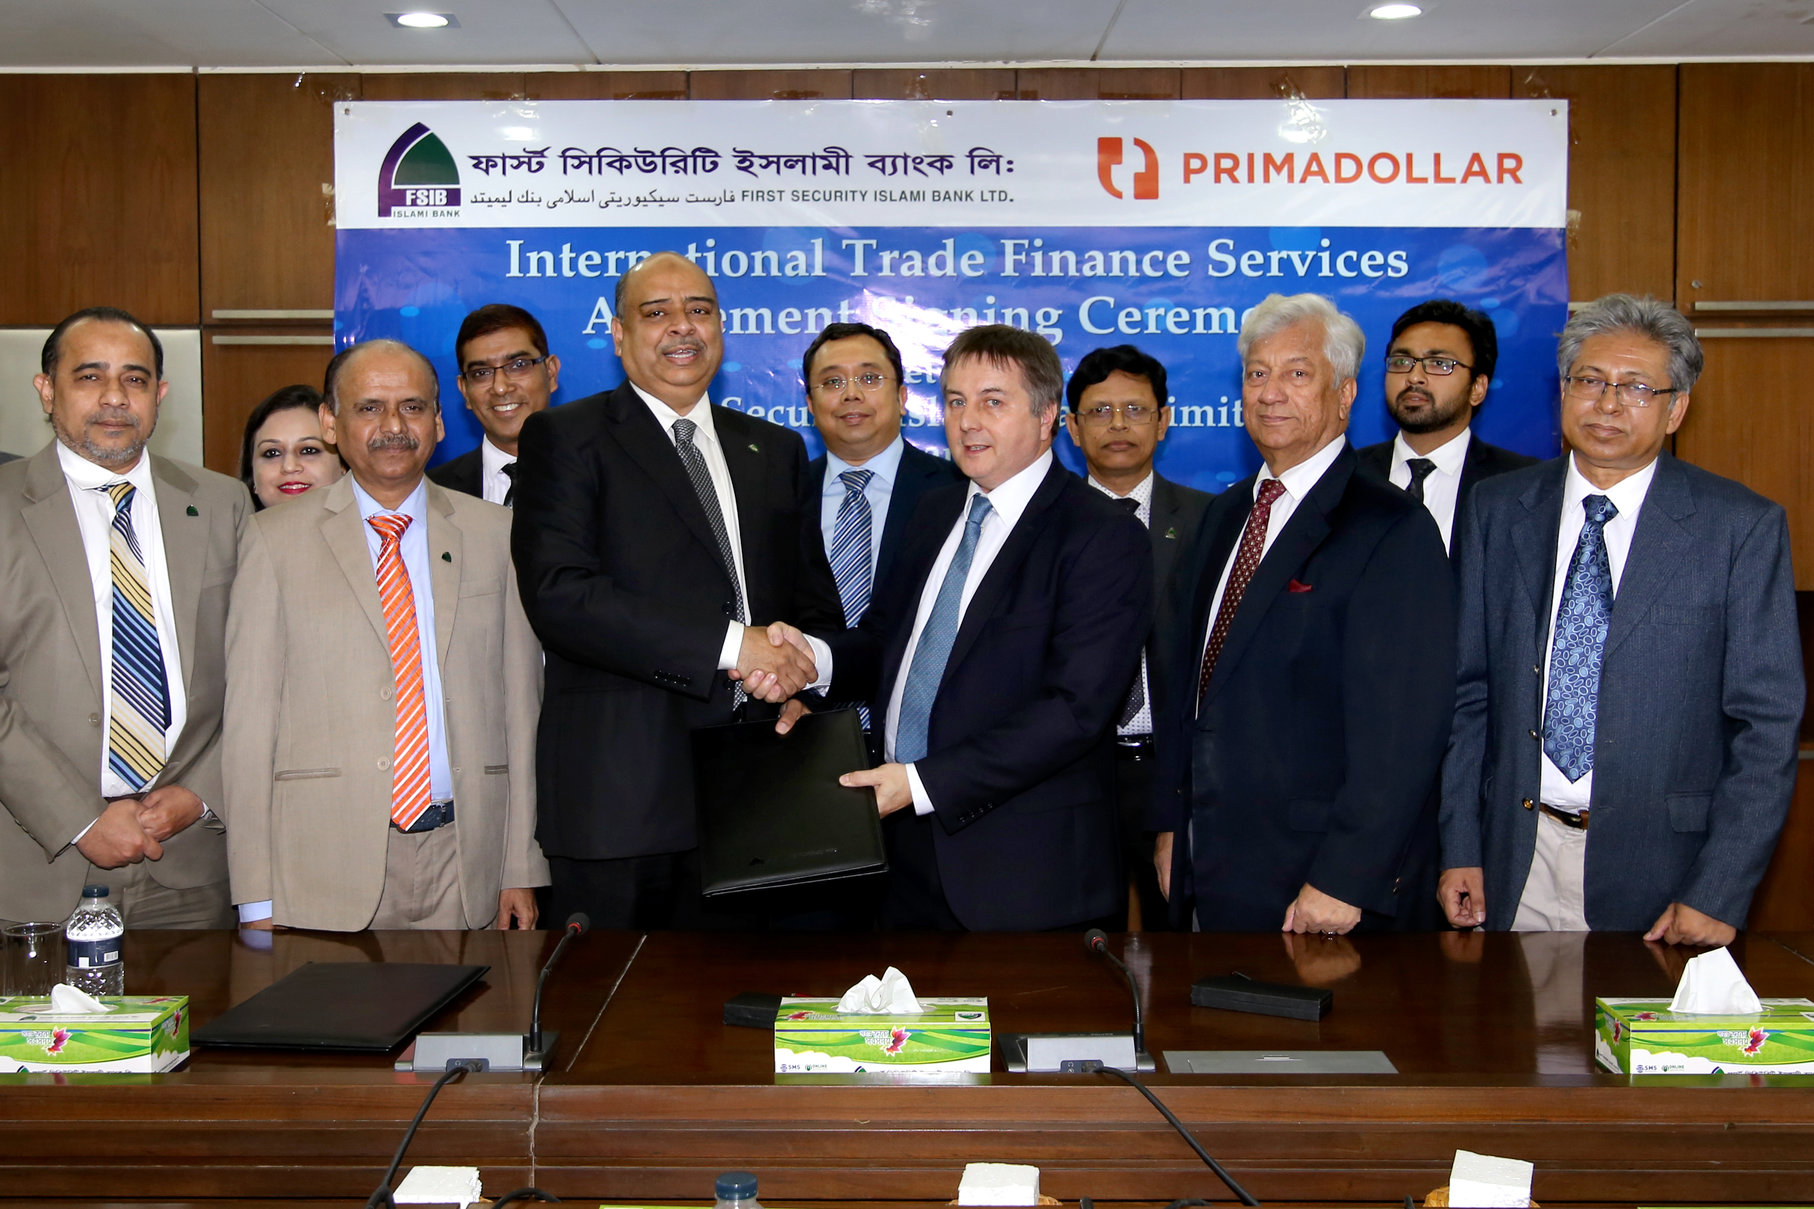 British trade finance firm strikes deal with Bangladeshi bank